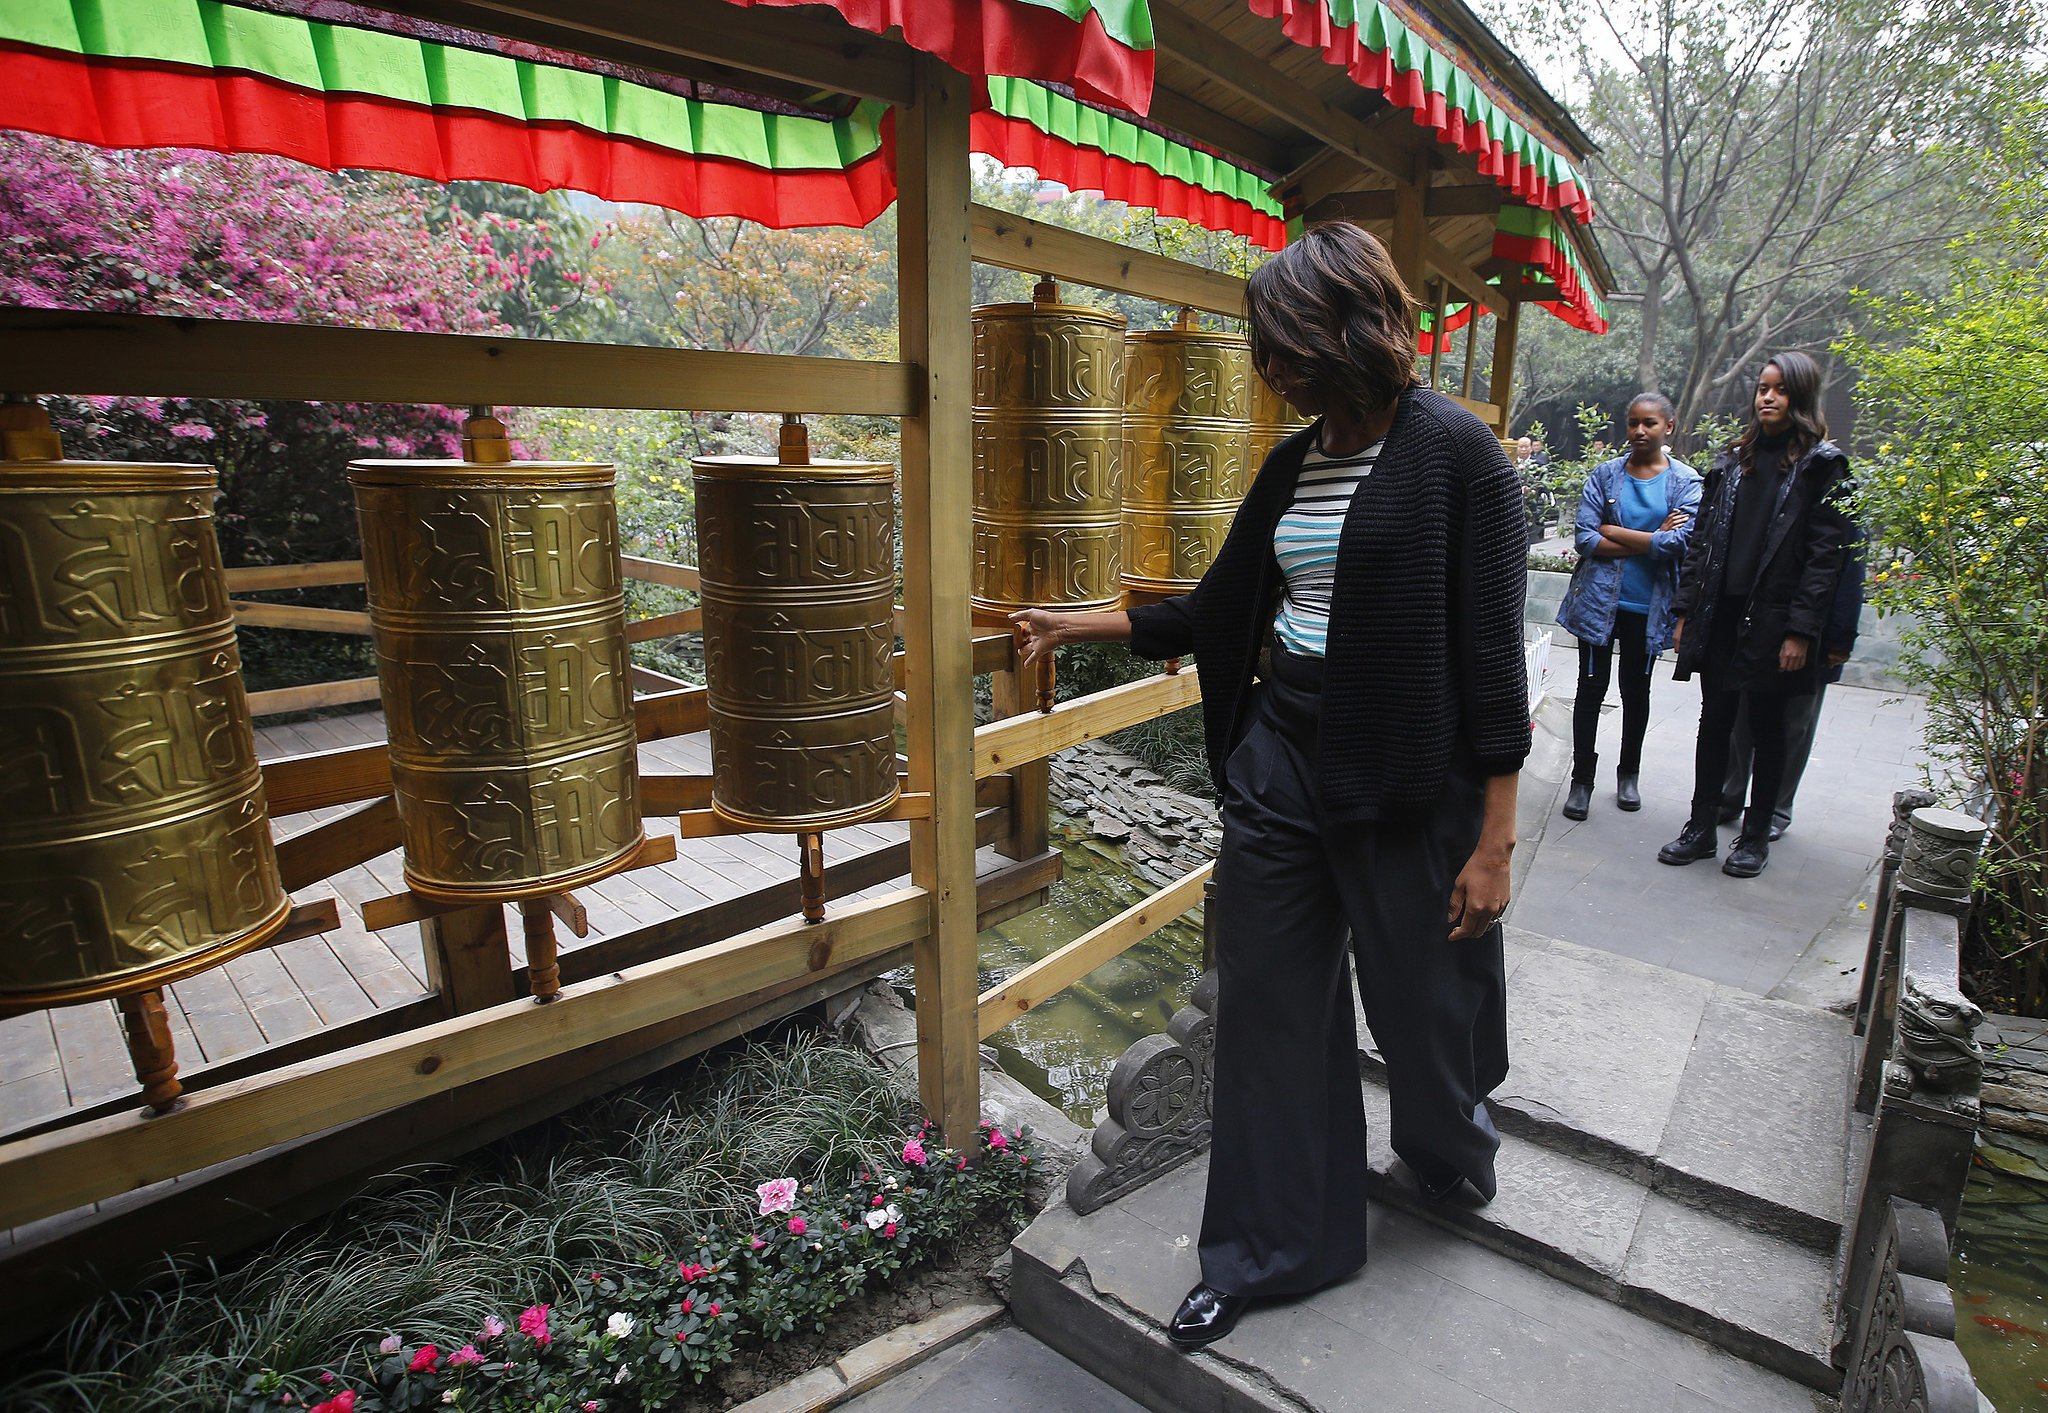 Michelle Obama checked out a Tibetan prayer wheel while at a restaurant in Chengdu.